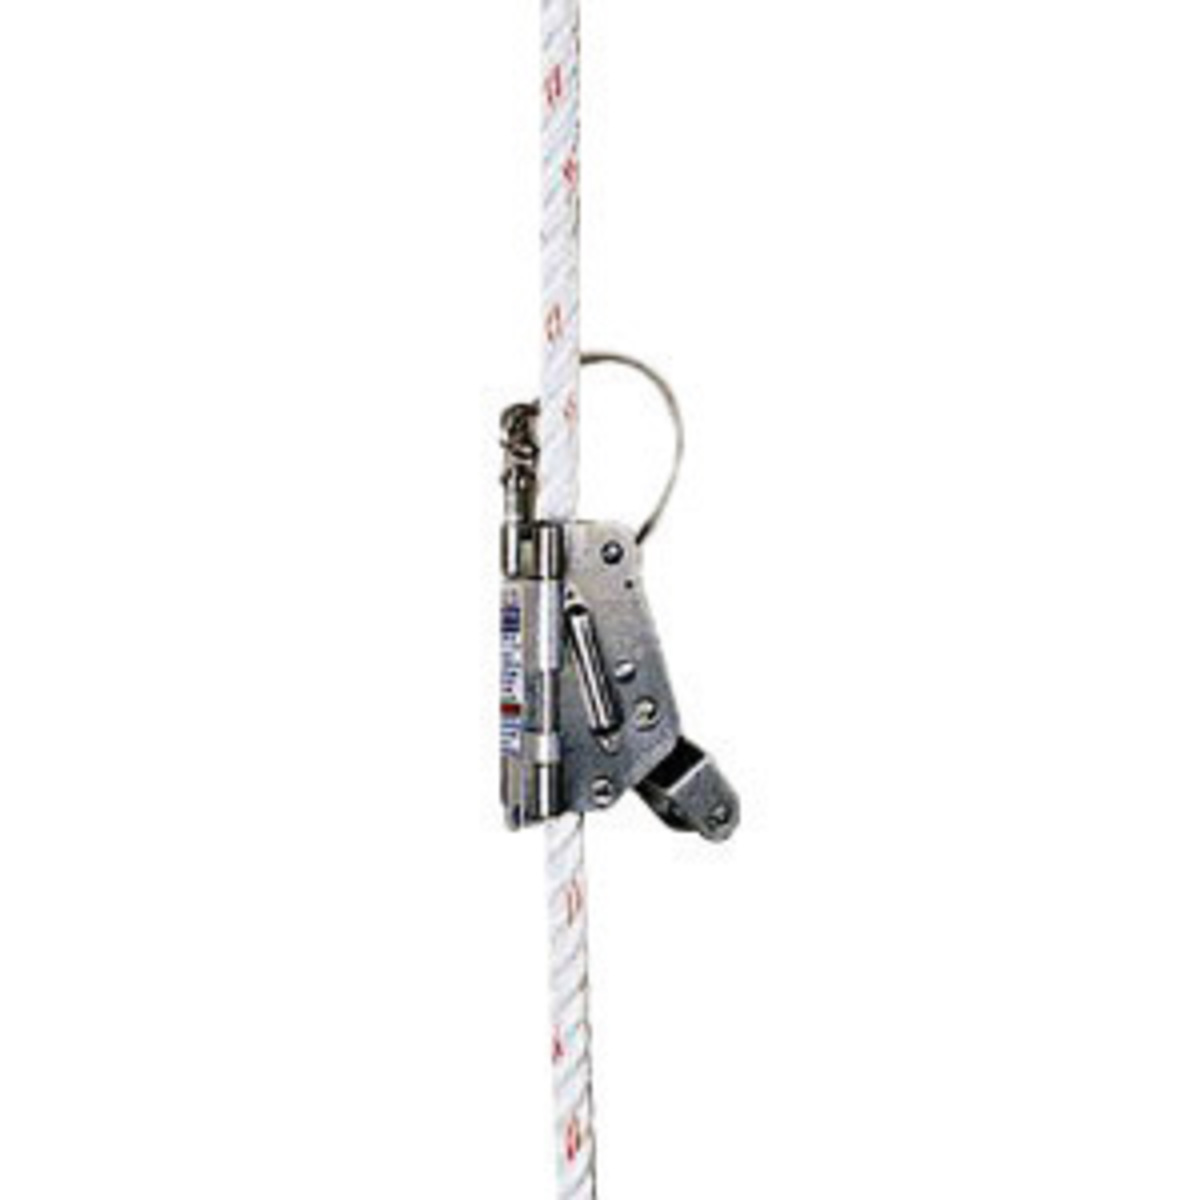 Dbi Sala Mobile Aluminum And Stainless Steel Rope Grab With 3 Ez Stop Ii Shock